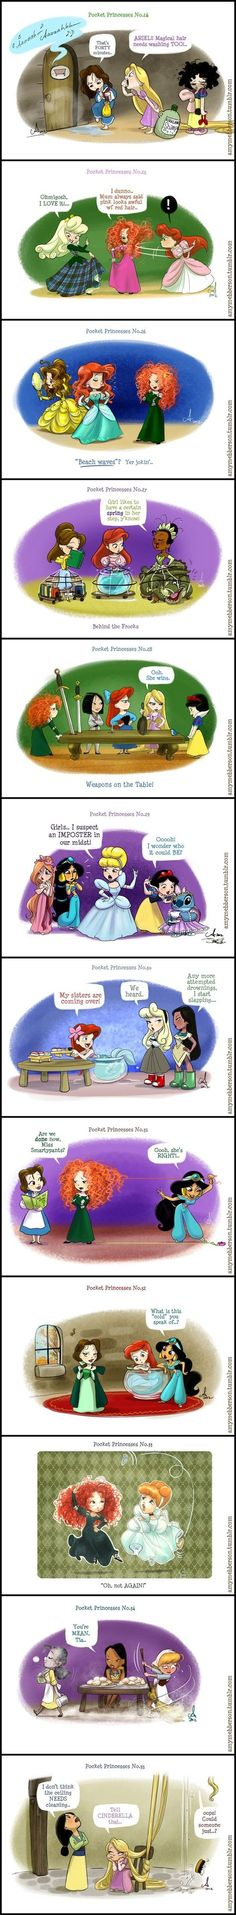 Pocket Princesses (Part 3) by Amy Mebberson STITCH. GUYS STITCH MAKES WHATEVER WAS ALREADY BEAUTIFUL JUST FABULOUS: